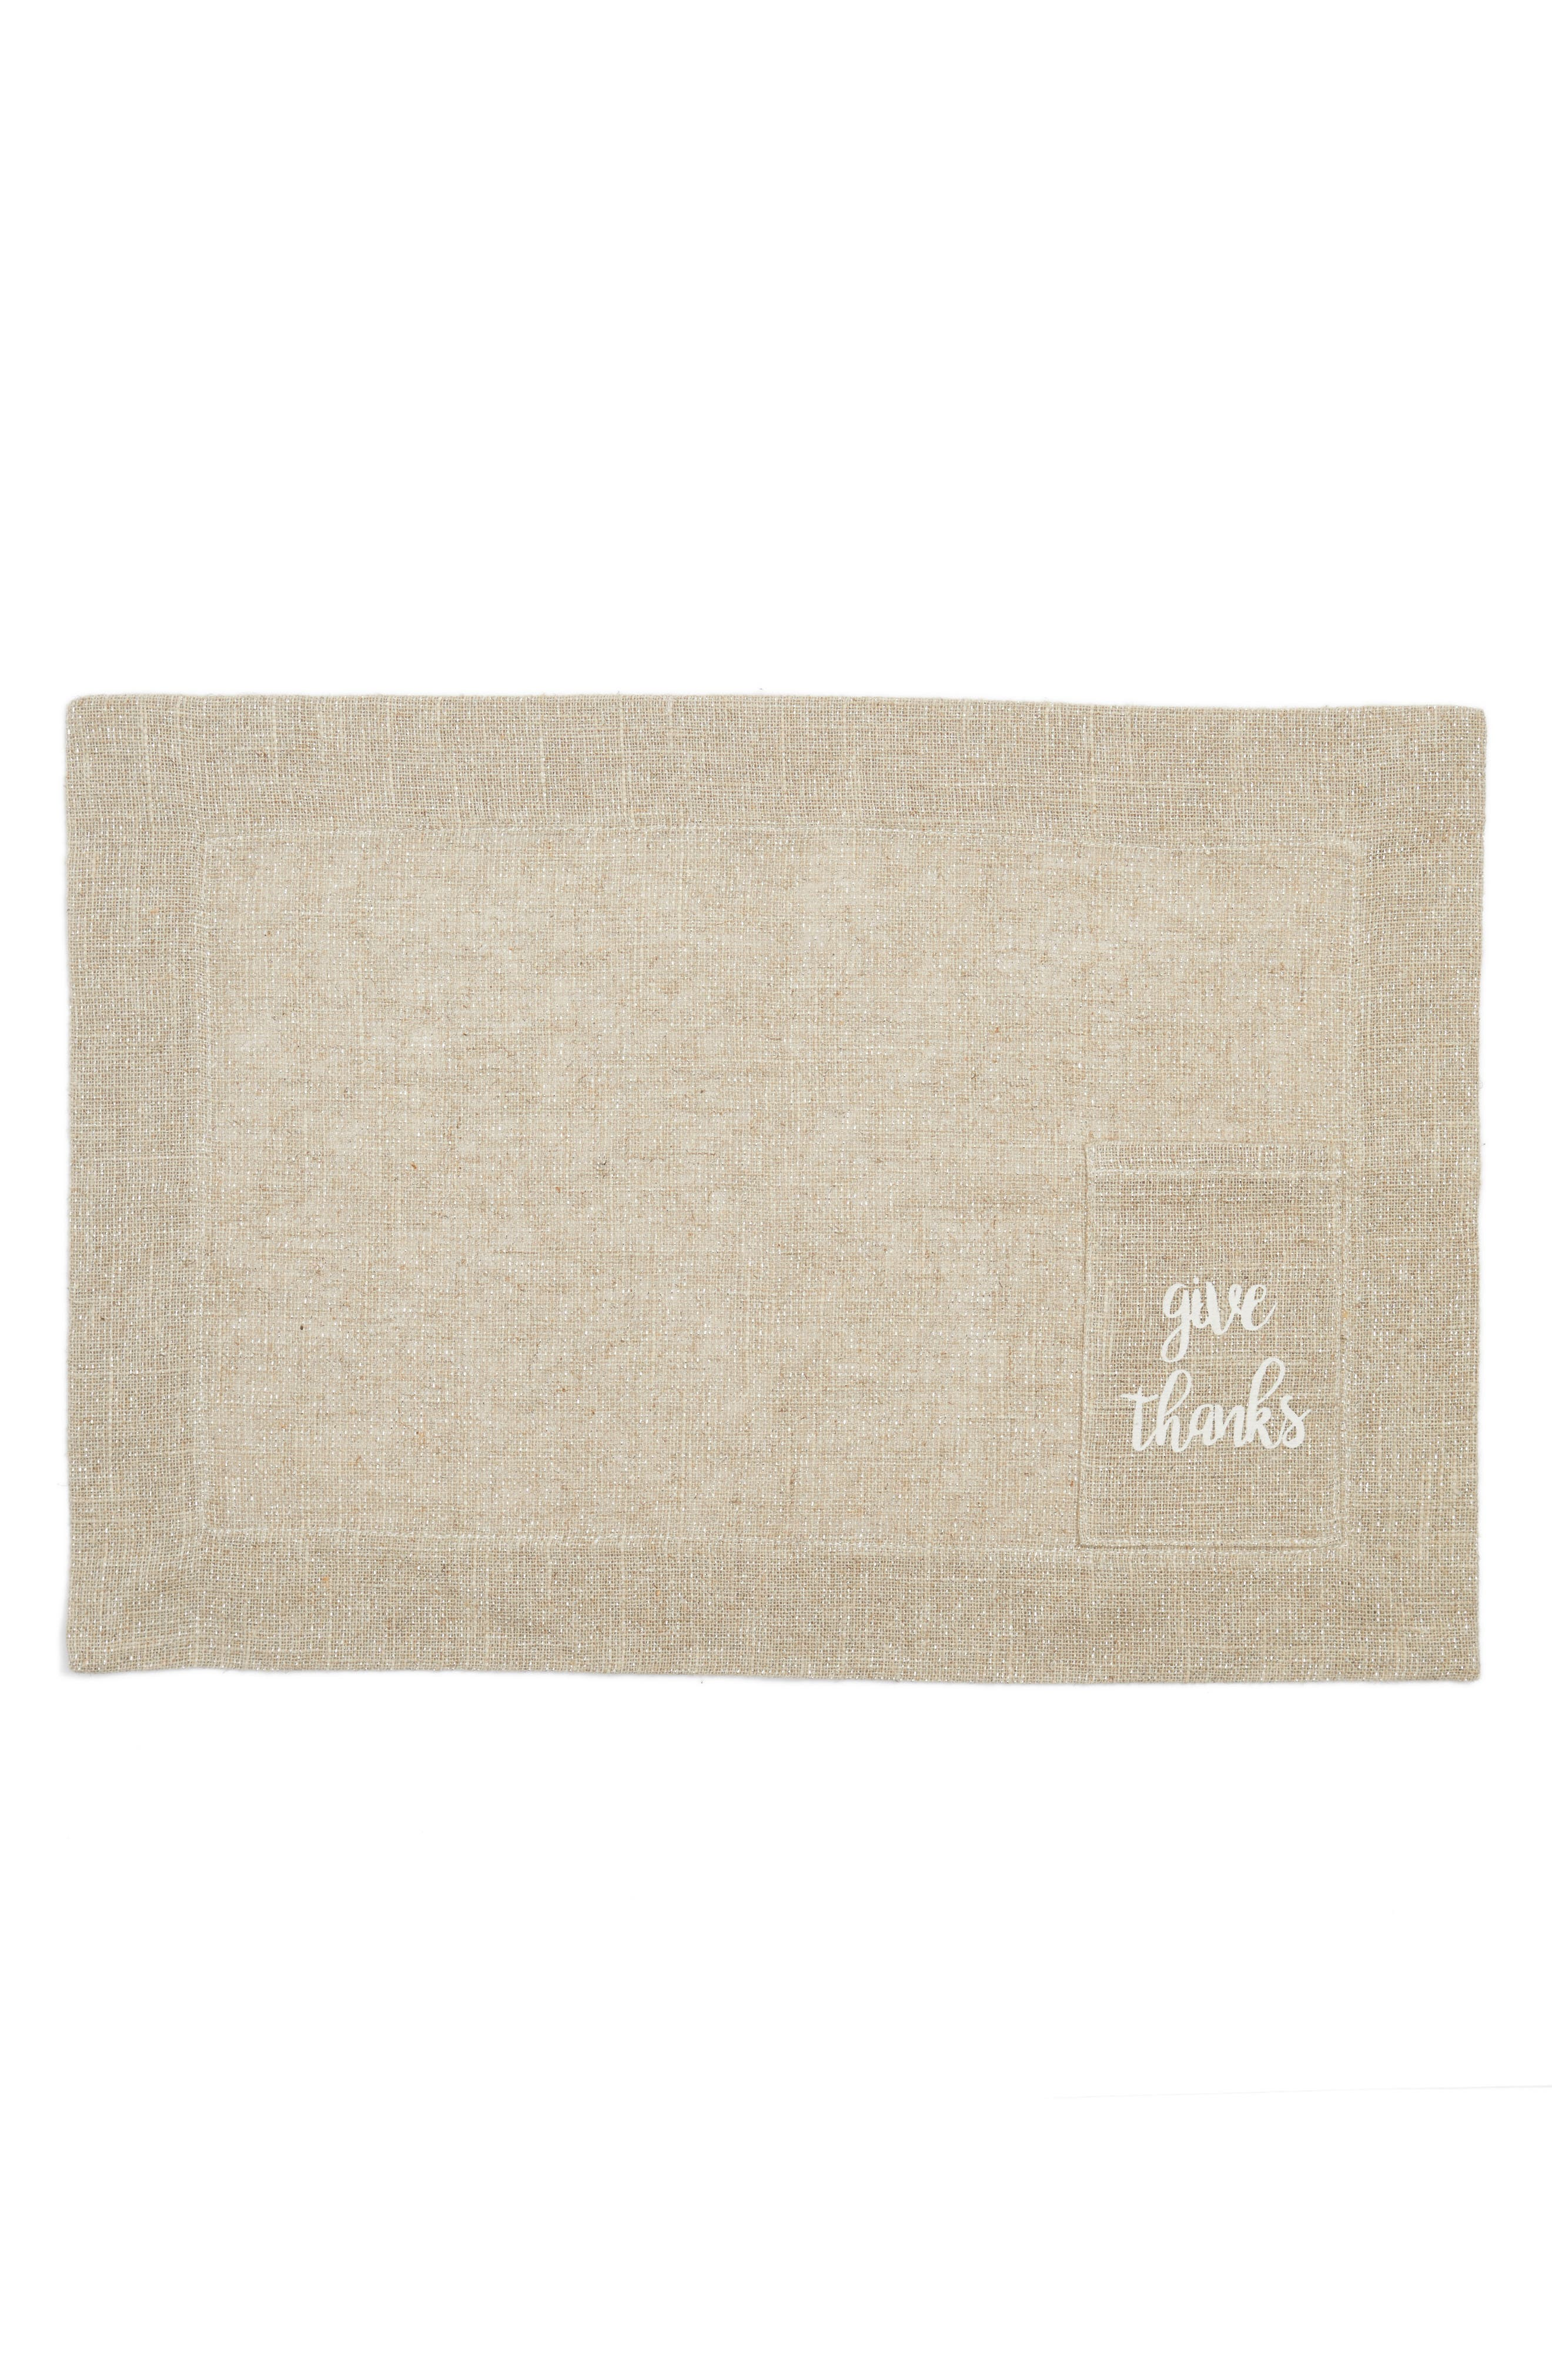 Main Image - Levtex Give Thanks Placemat